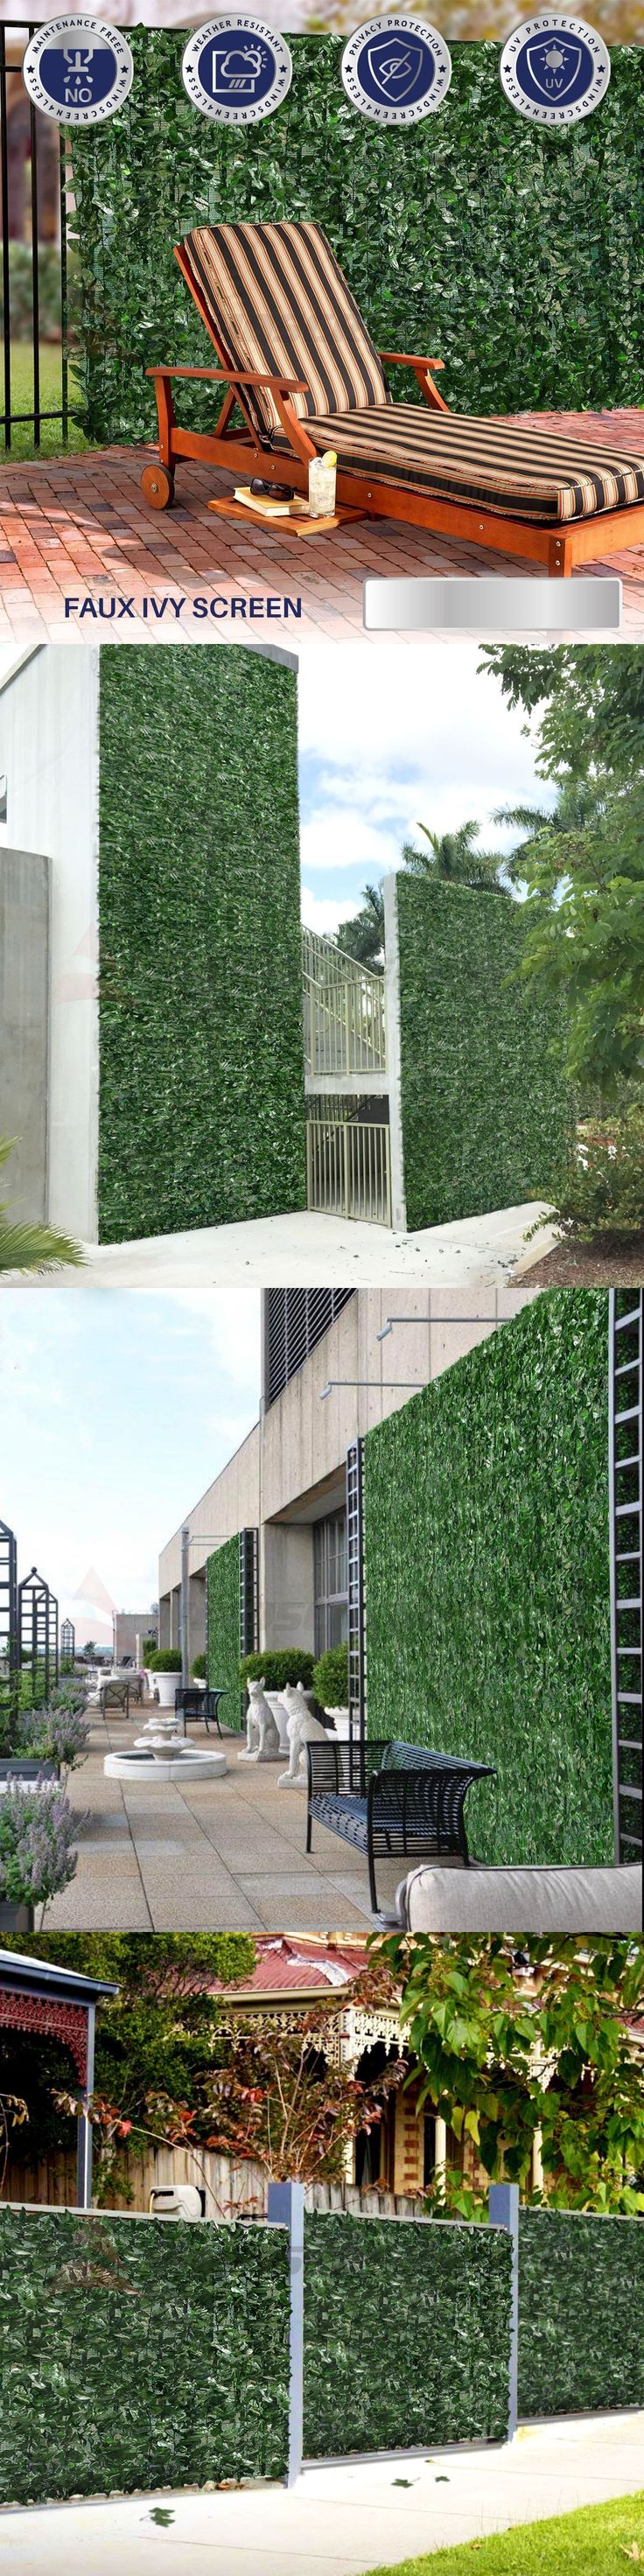 Privacy screen for chain link fence ebay - Fence Panels 139946 6 Ft H Artificial Faux Ivy Leaf Privacy Fence Screen D Cor Panels